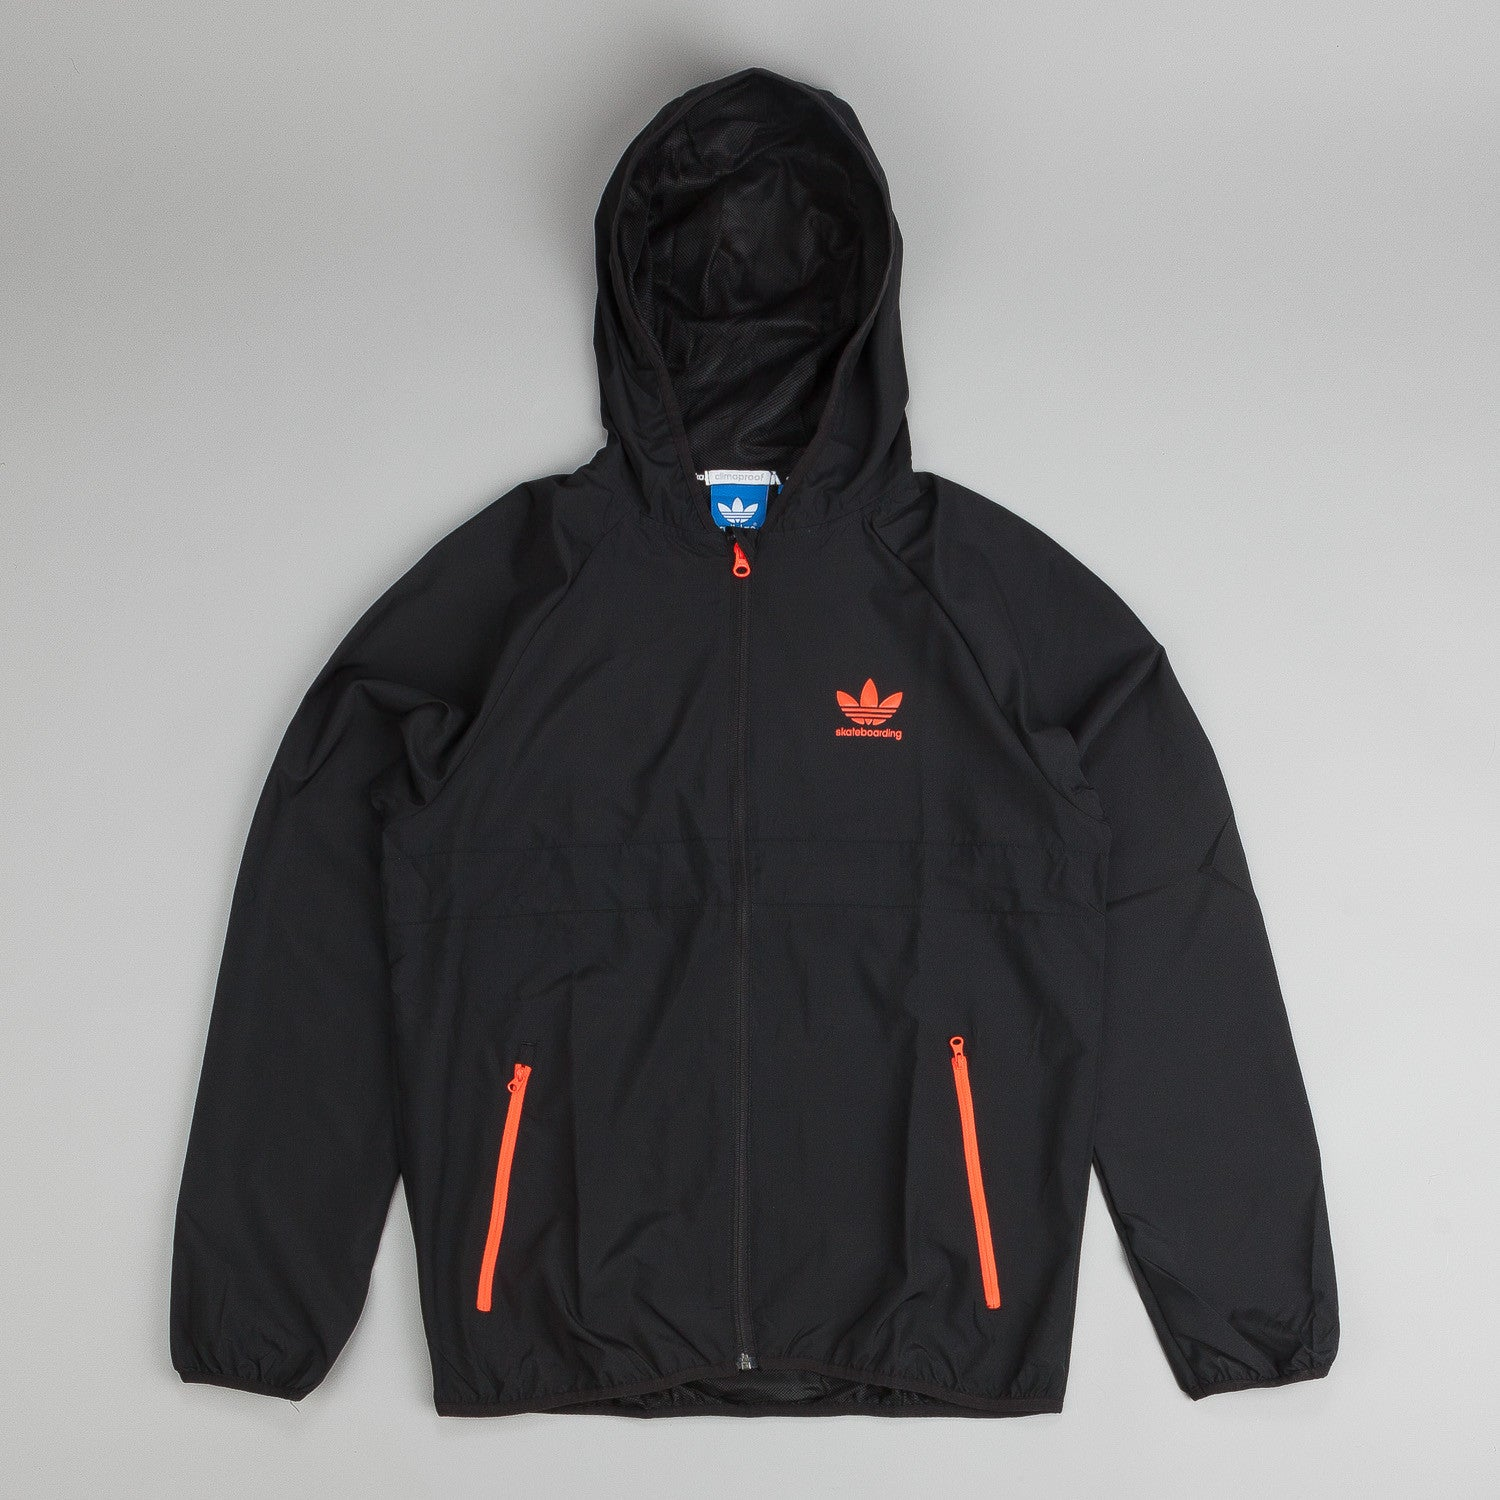 Adidas Adv SLR Red Wind Jacket